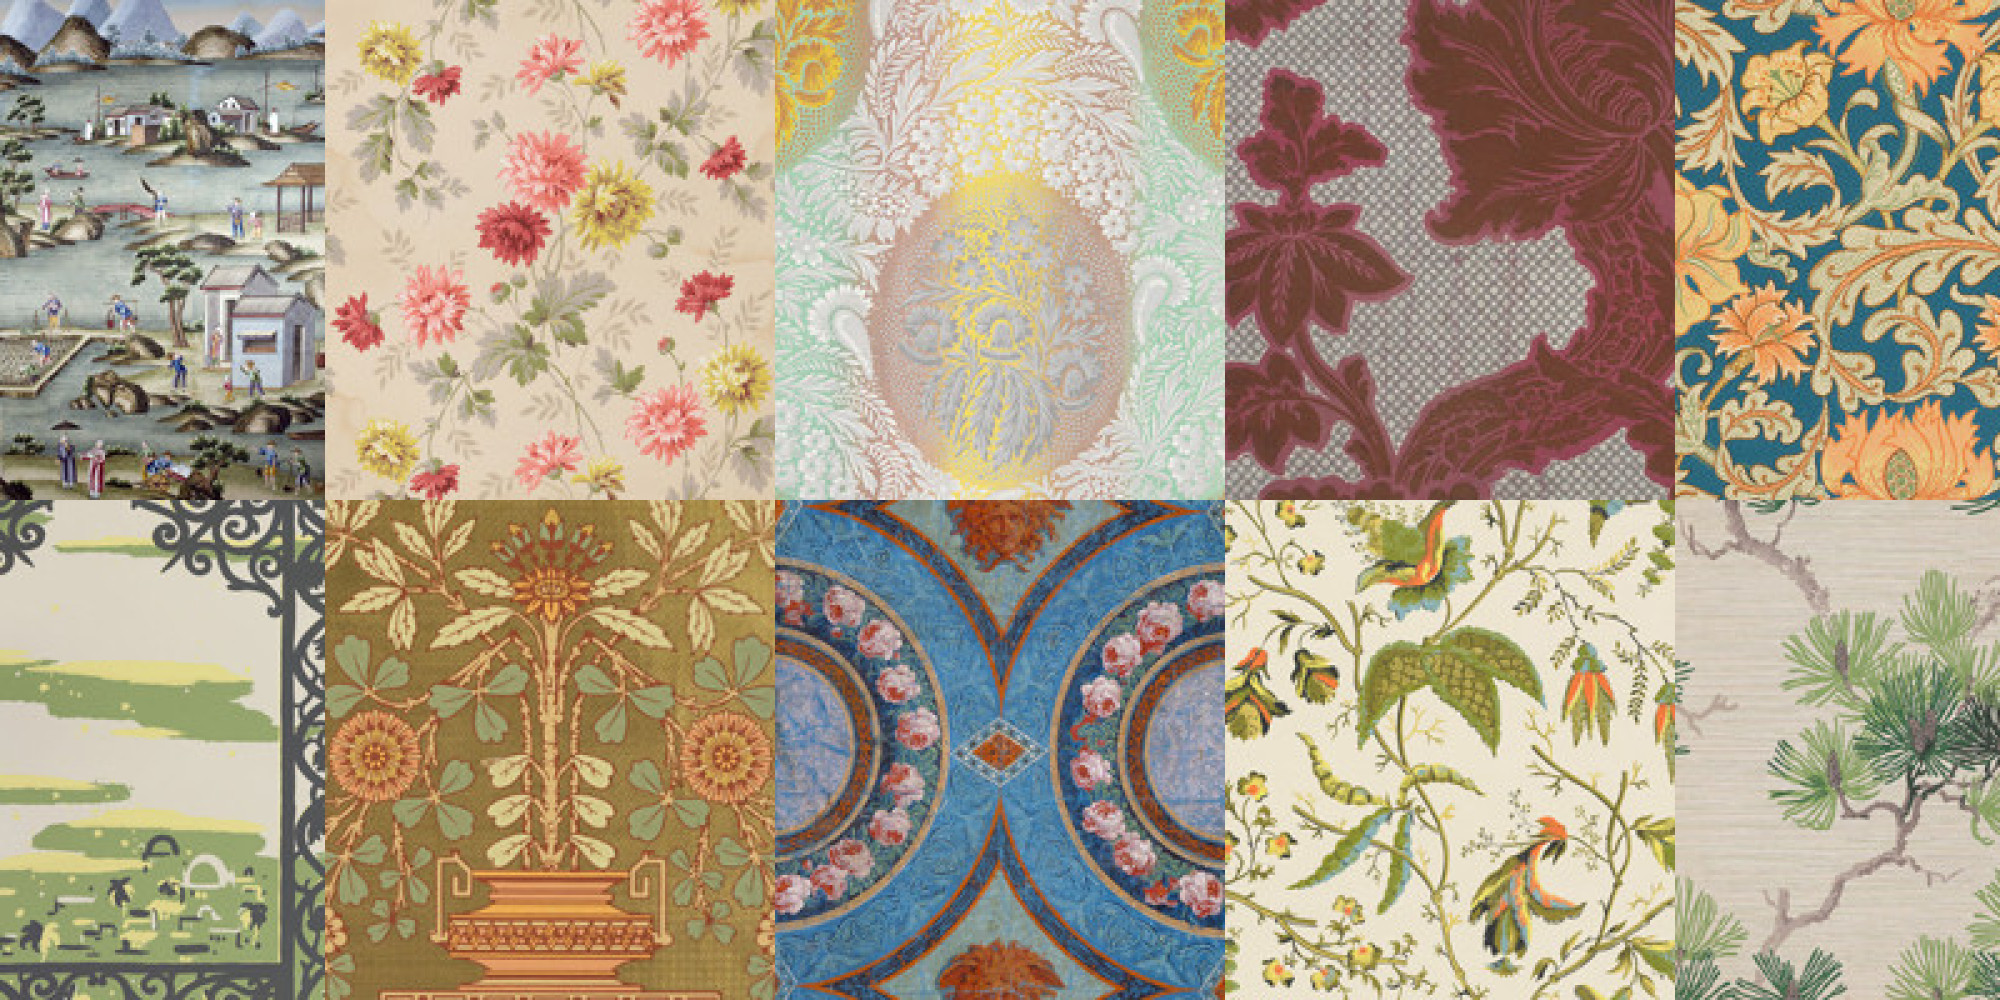 thankfully someone is preserving a history of wallpaper